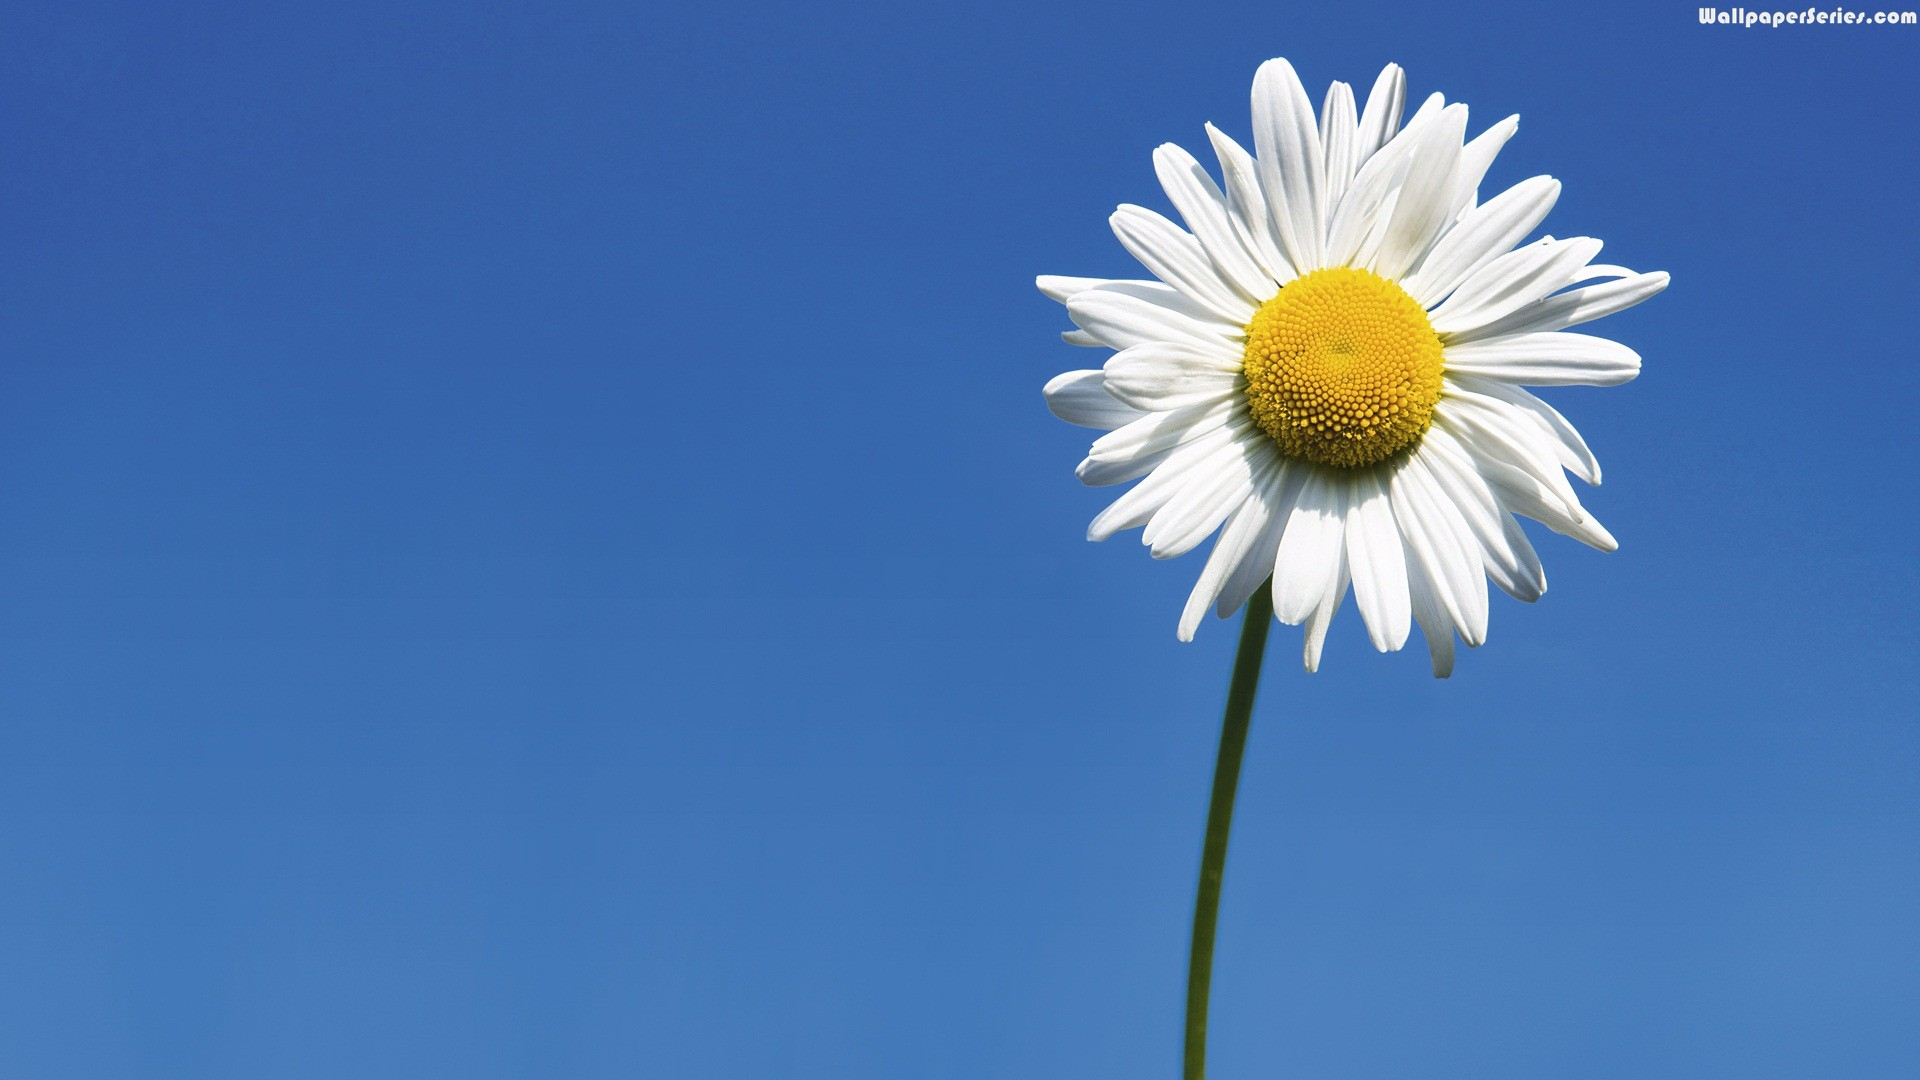 1920x1080, Daisy, Flowers, Wallpaper